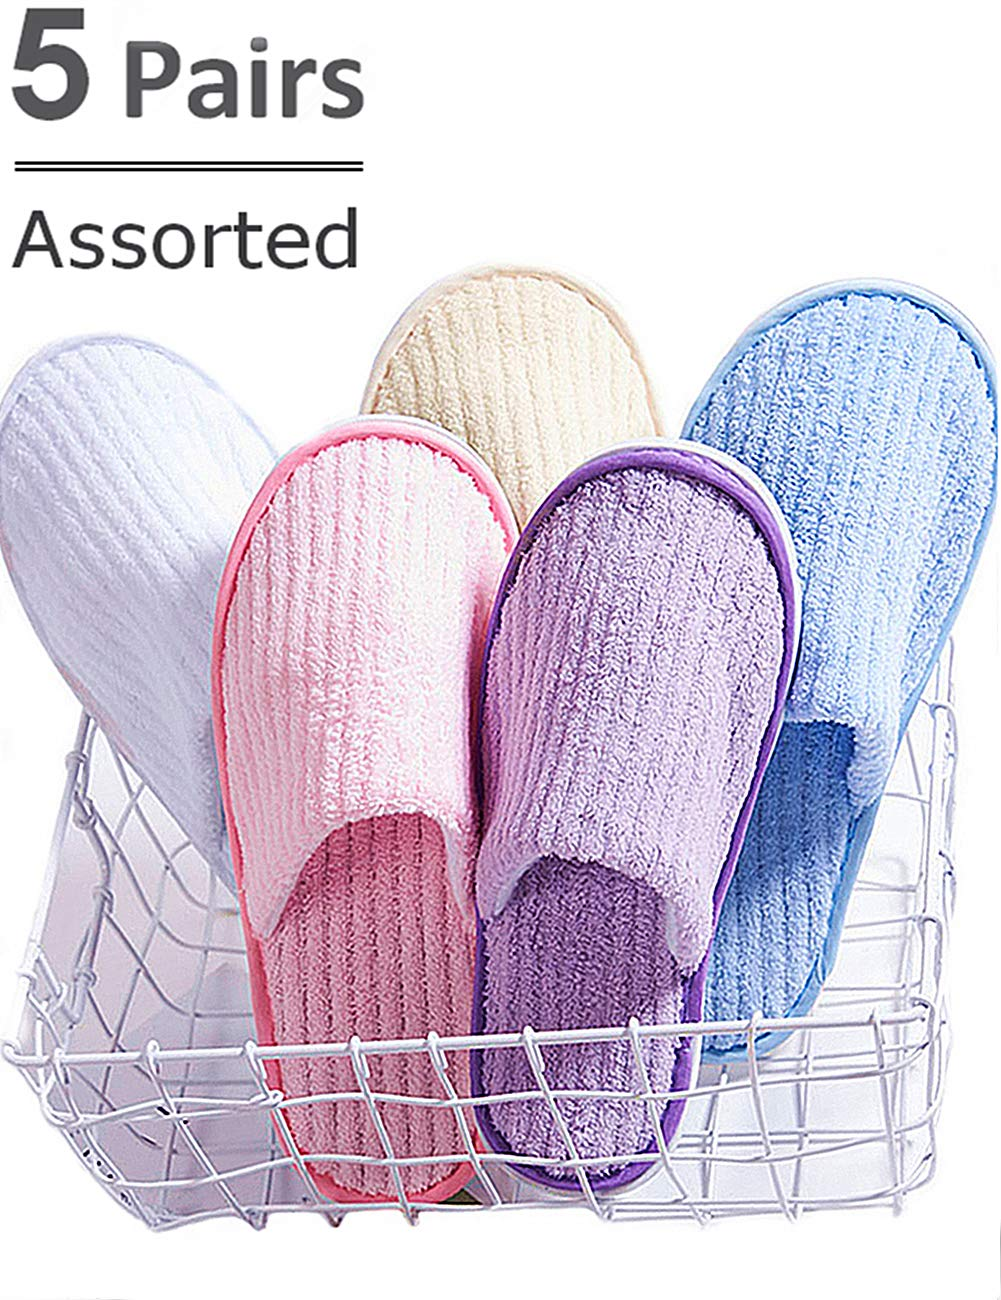 Eucoz 5 Pairs Spa Slippers,Assorted Color,Closed Toe for Family,Guests,Travel,Hotel,Hospital,Washable,Portable,Disposable